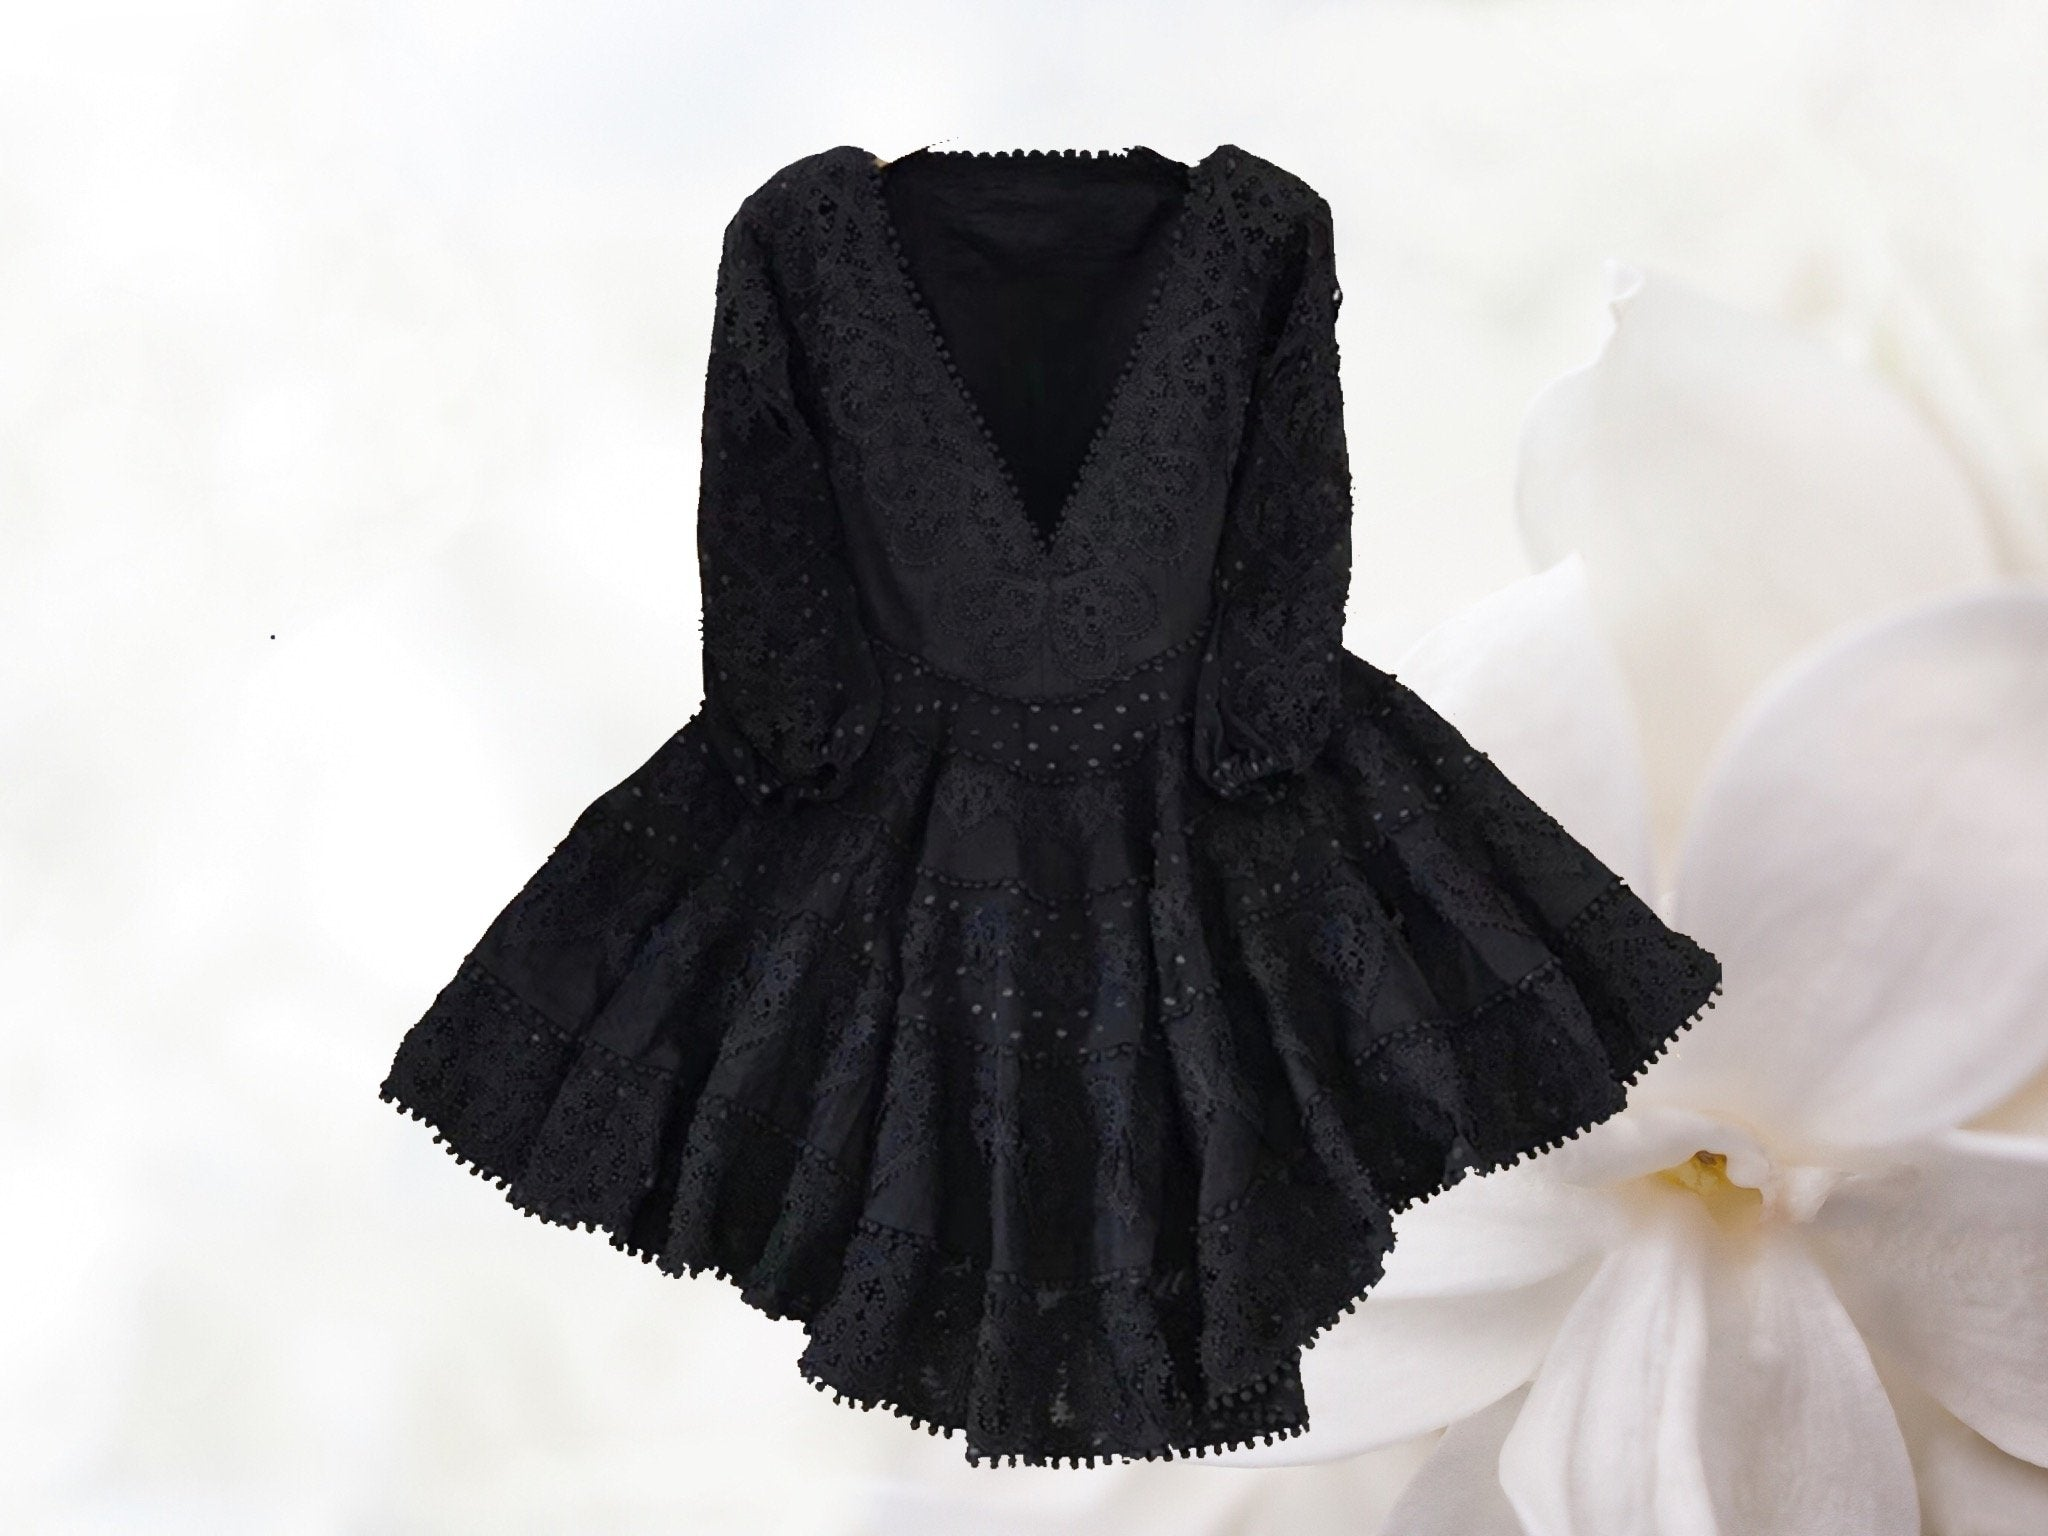 True Lover V Neck Embroidered Lace Mini Skater Dress in Black - Lookbook Boutique